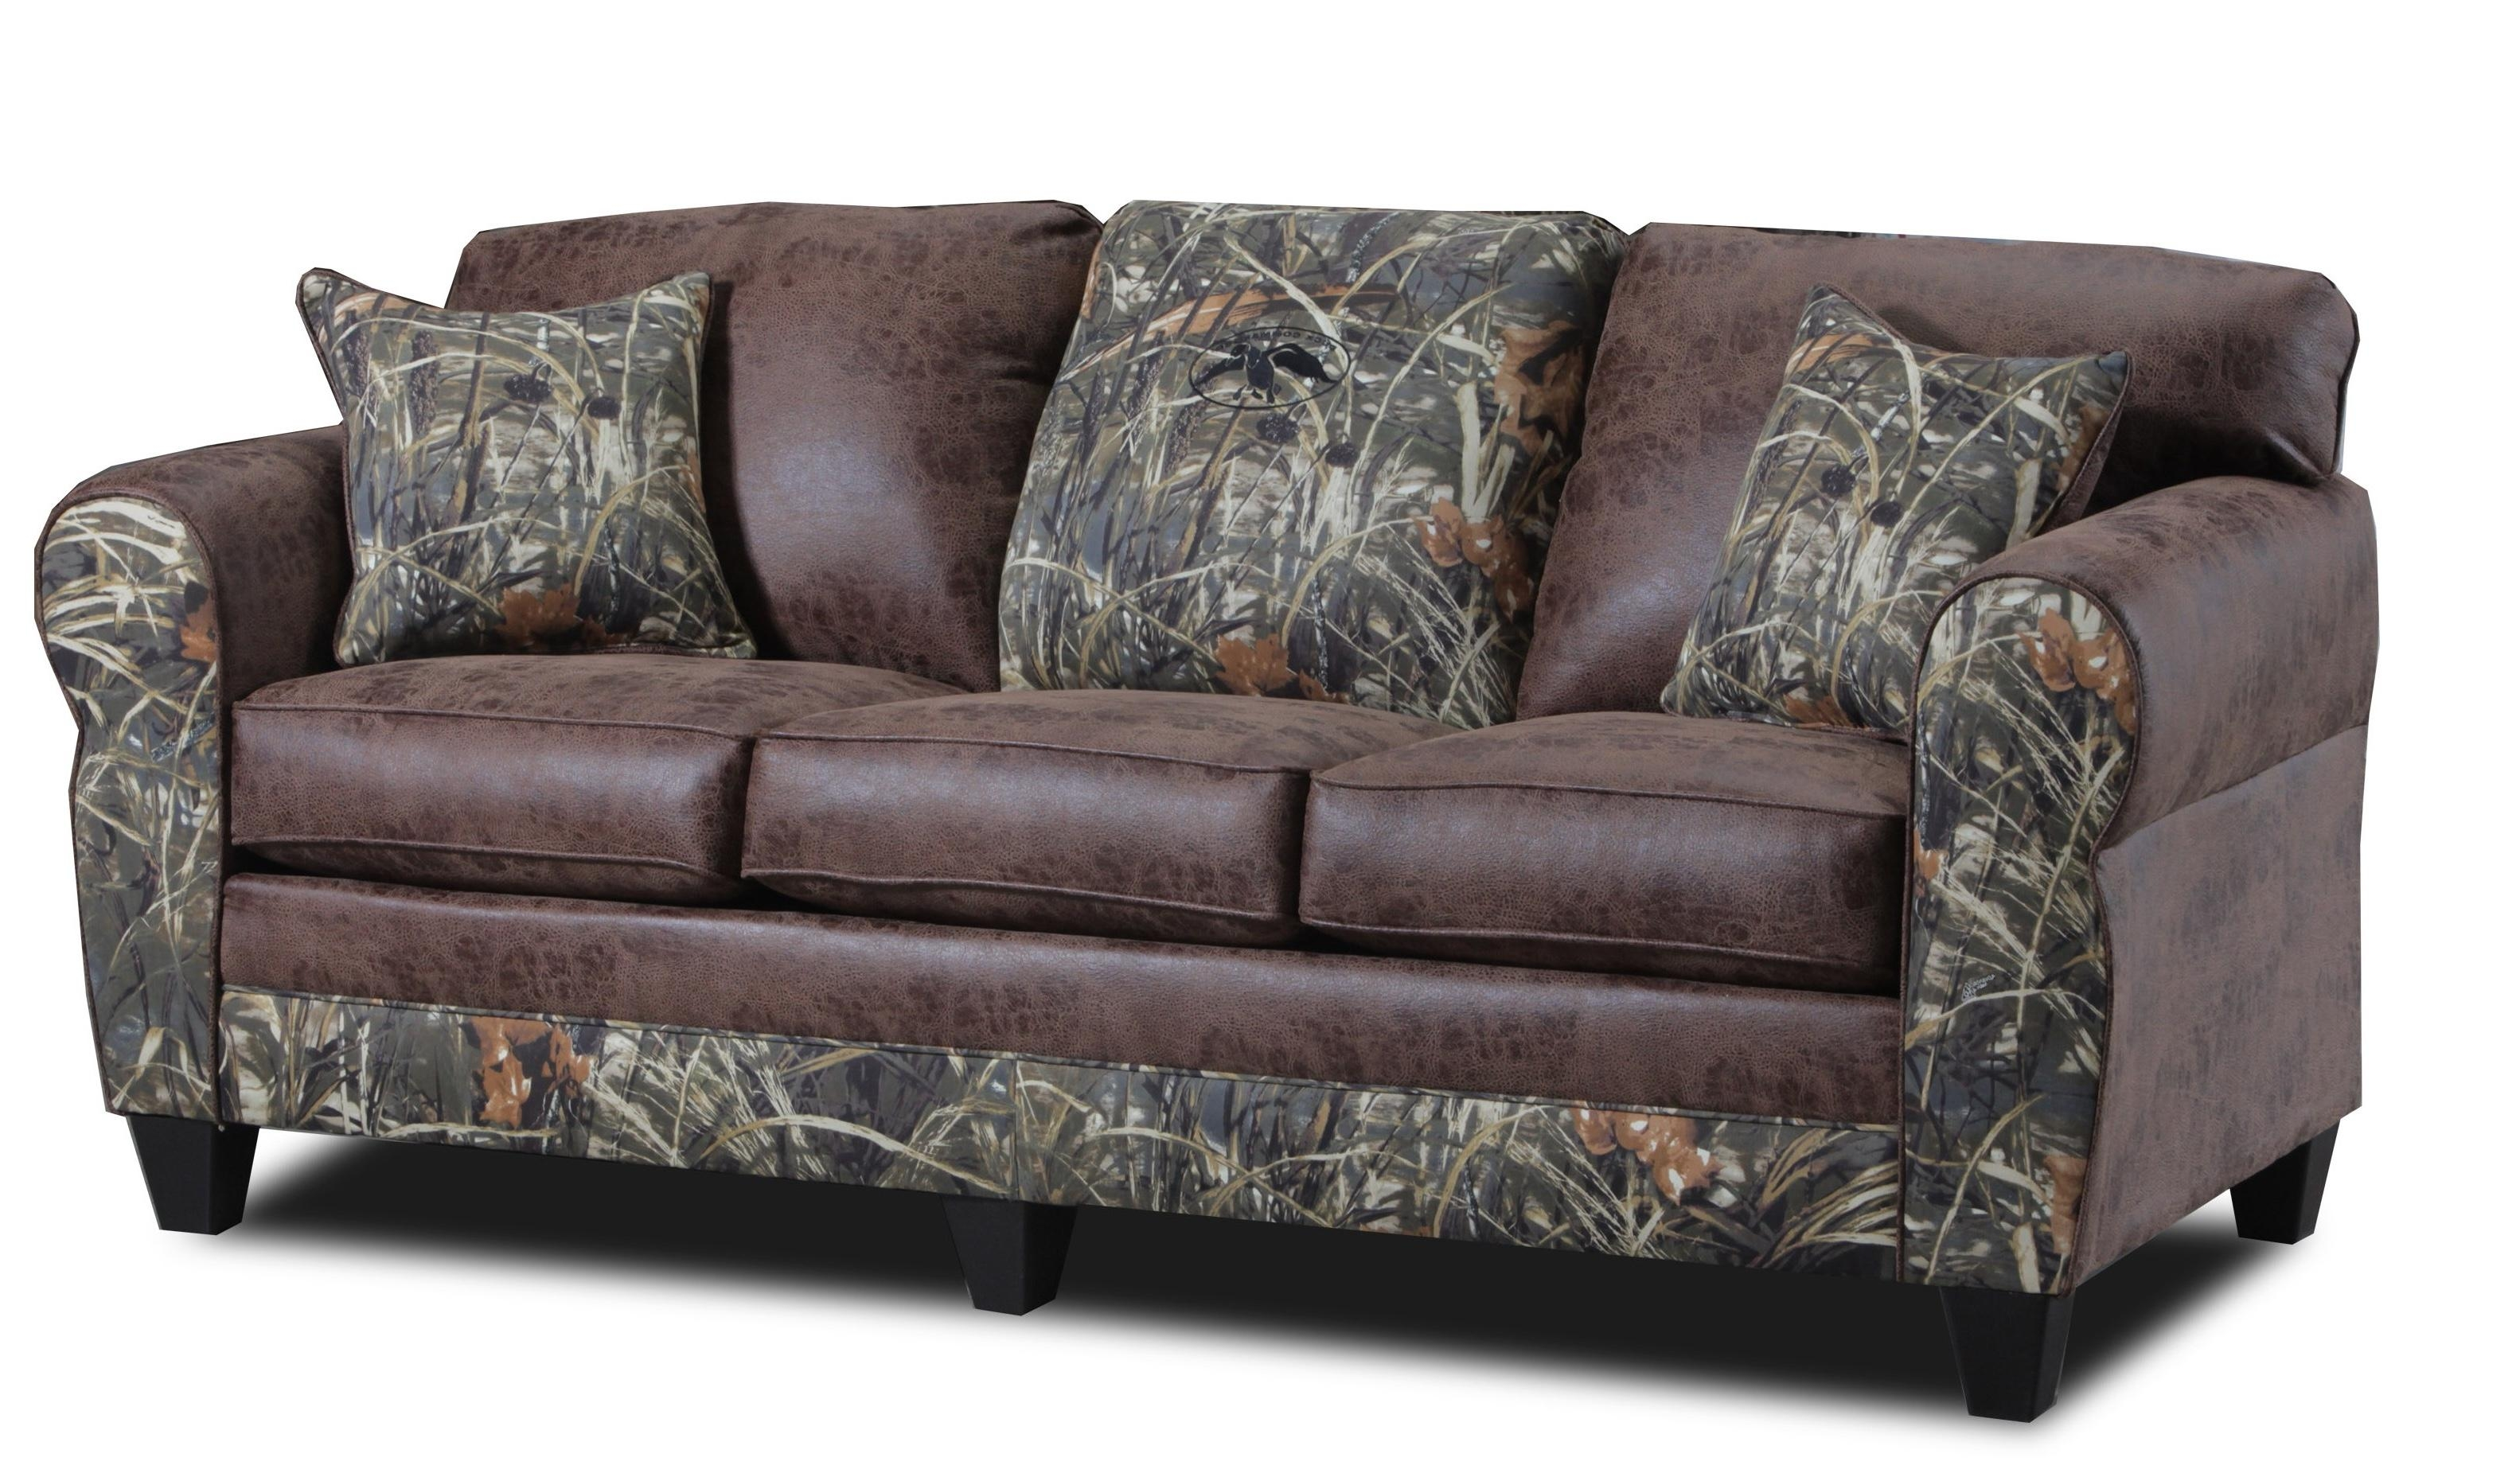 Camo Living Room Ideas Set From Aarons Nadine Sofa Sachi Camo New With Regard To Camo Reclining Sofas (Image 4 of 20)